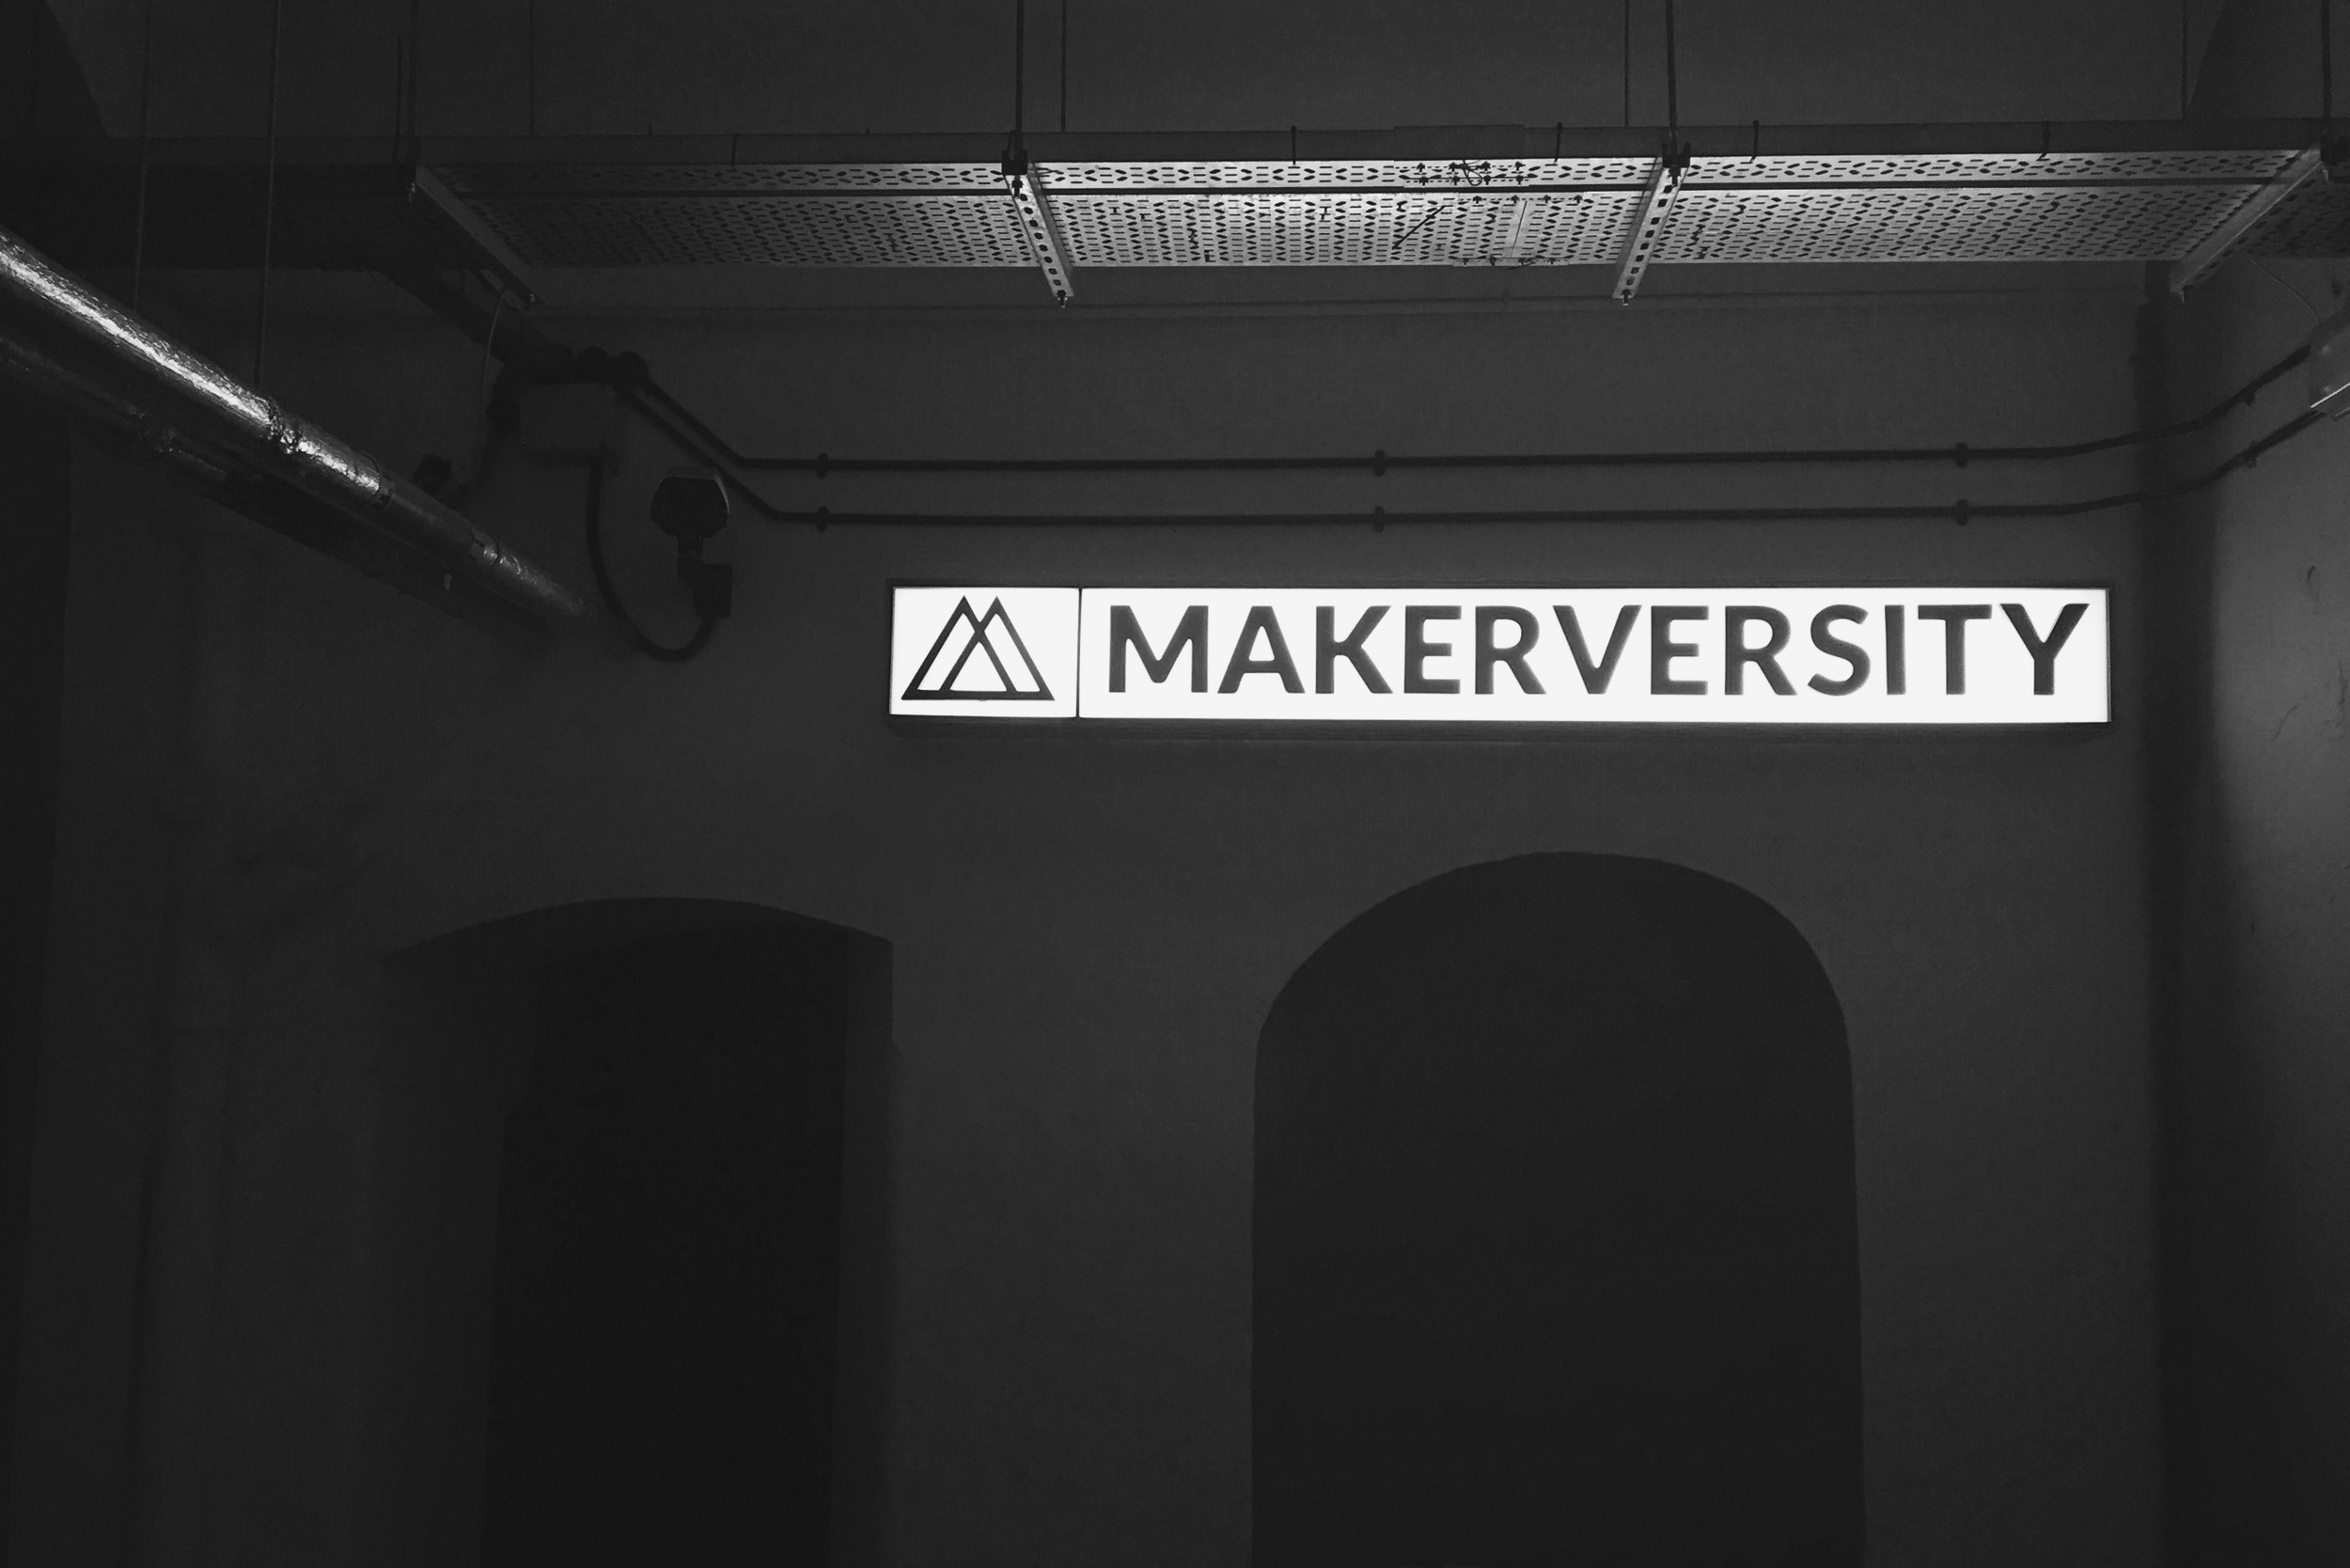 Being the last to leave Makerversity was a regular occurance in 2016-17.